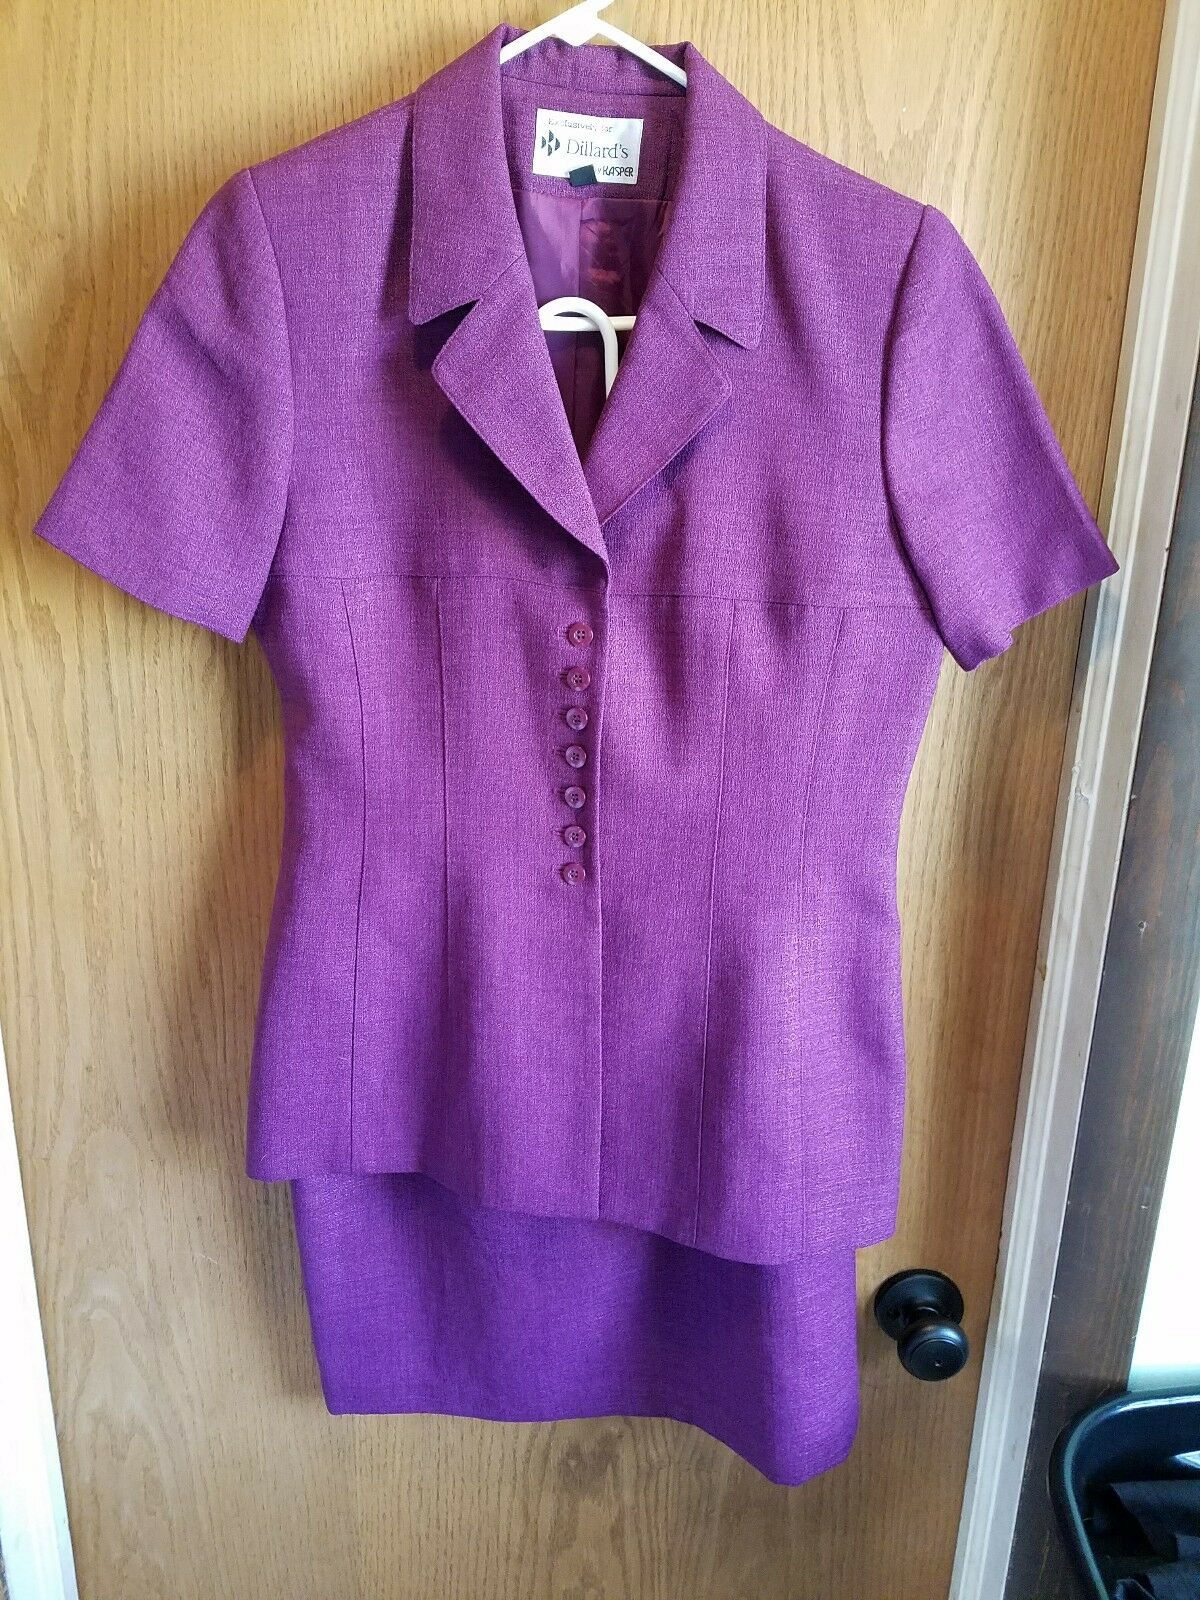 N KASPER For Dillards Purple Skirt Suit Lined Business Professional Size 6 Small